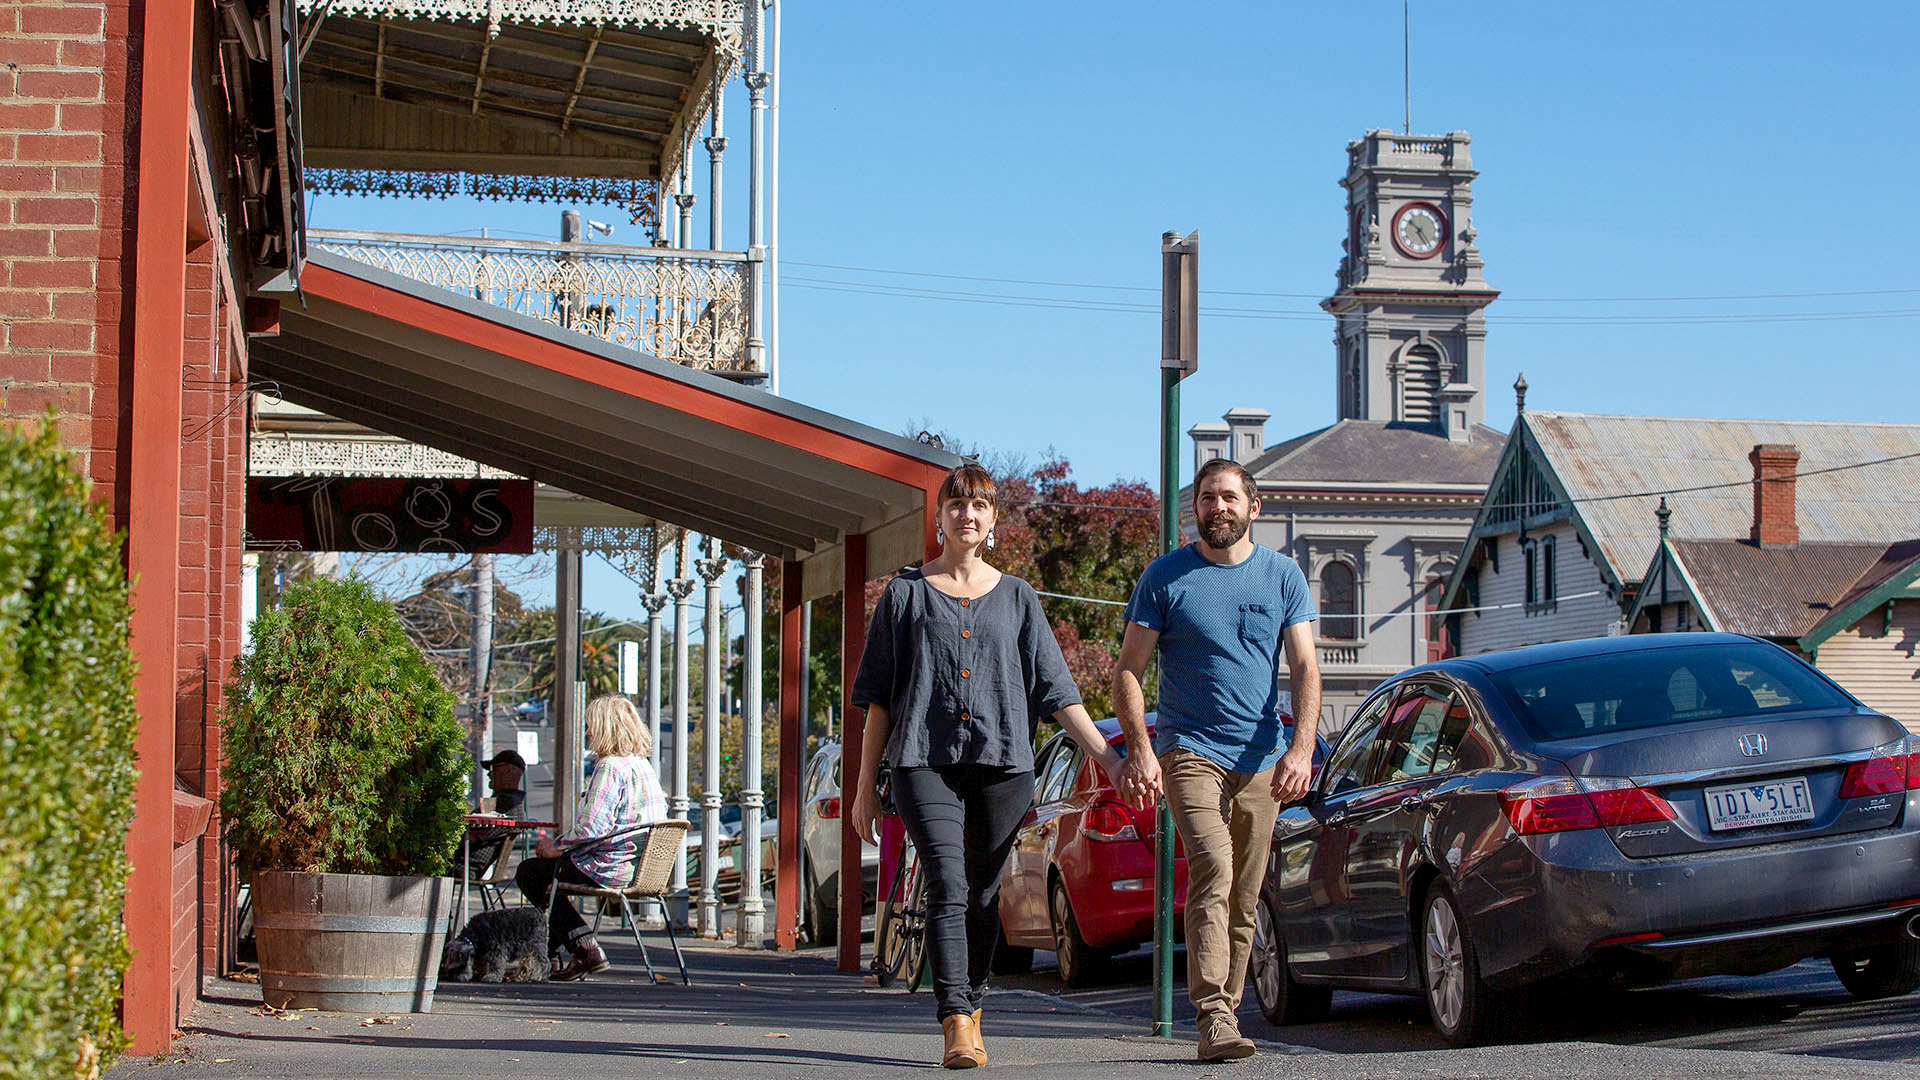 Explore the heritage streetscapes of Castlemaine and Maldon